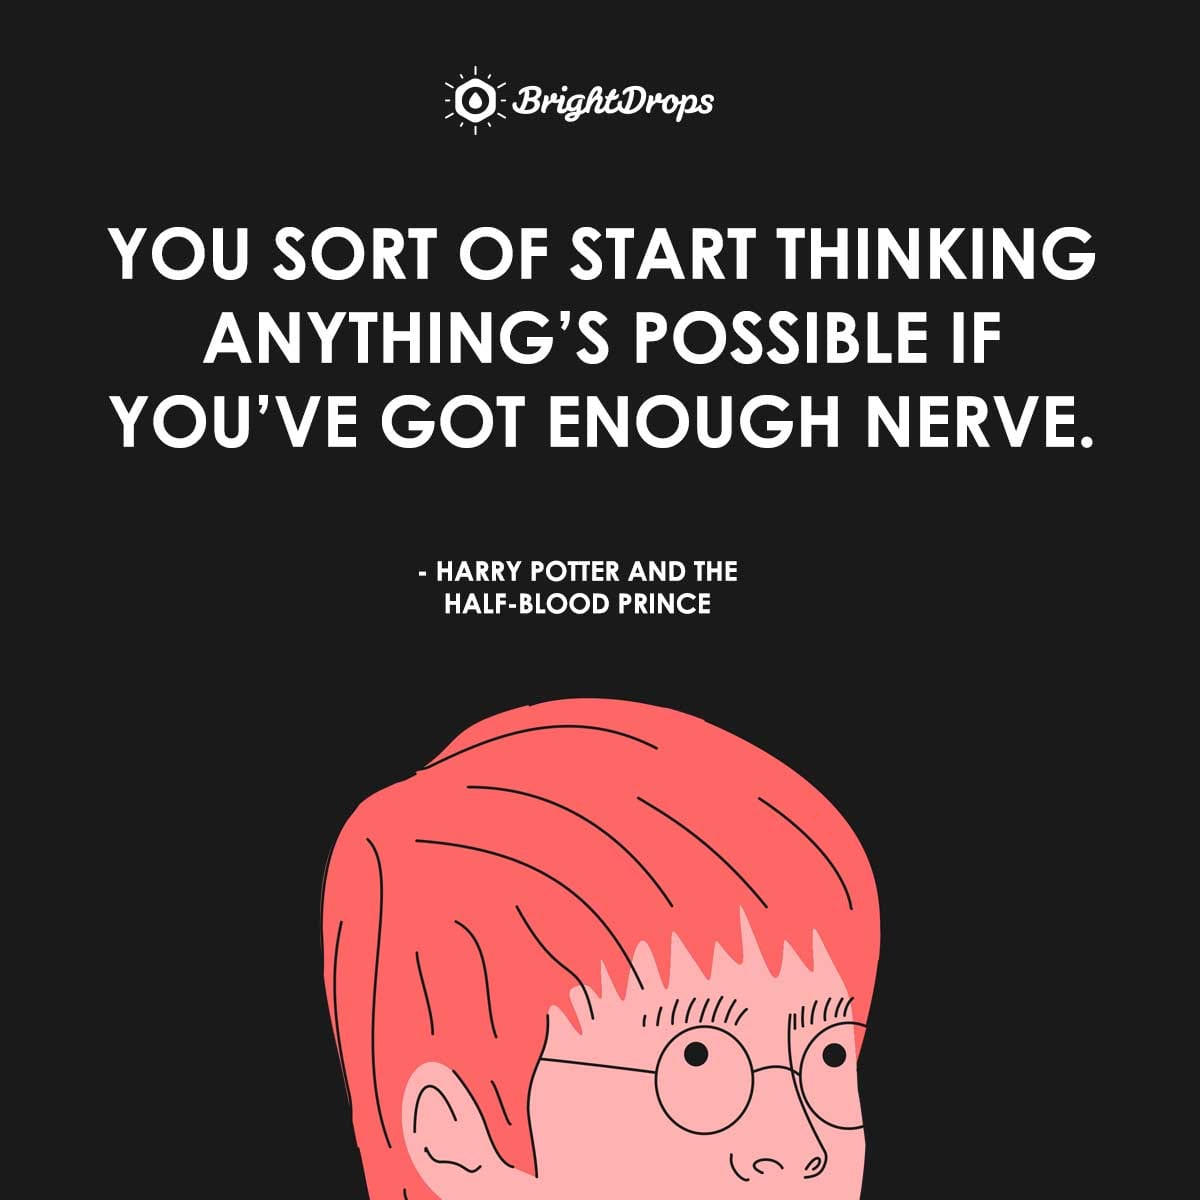 You sort of start thinking anything's possible if you've got enough nerve. - Harry Potter and the Half-Blood Prince